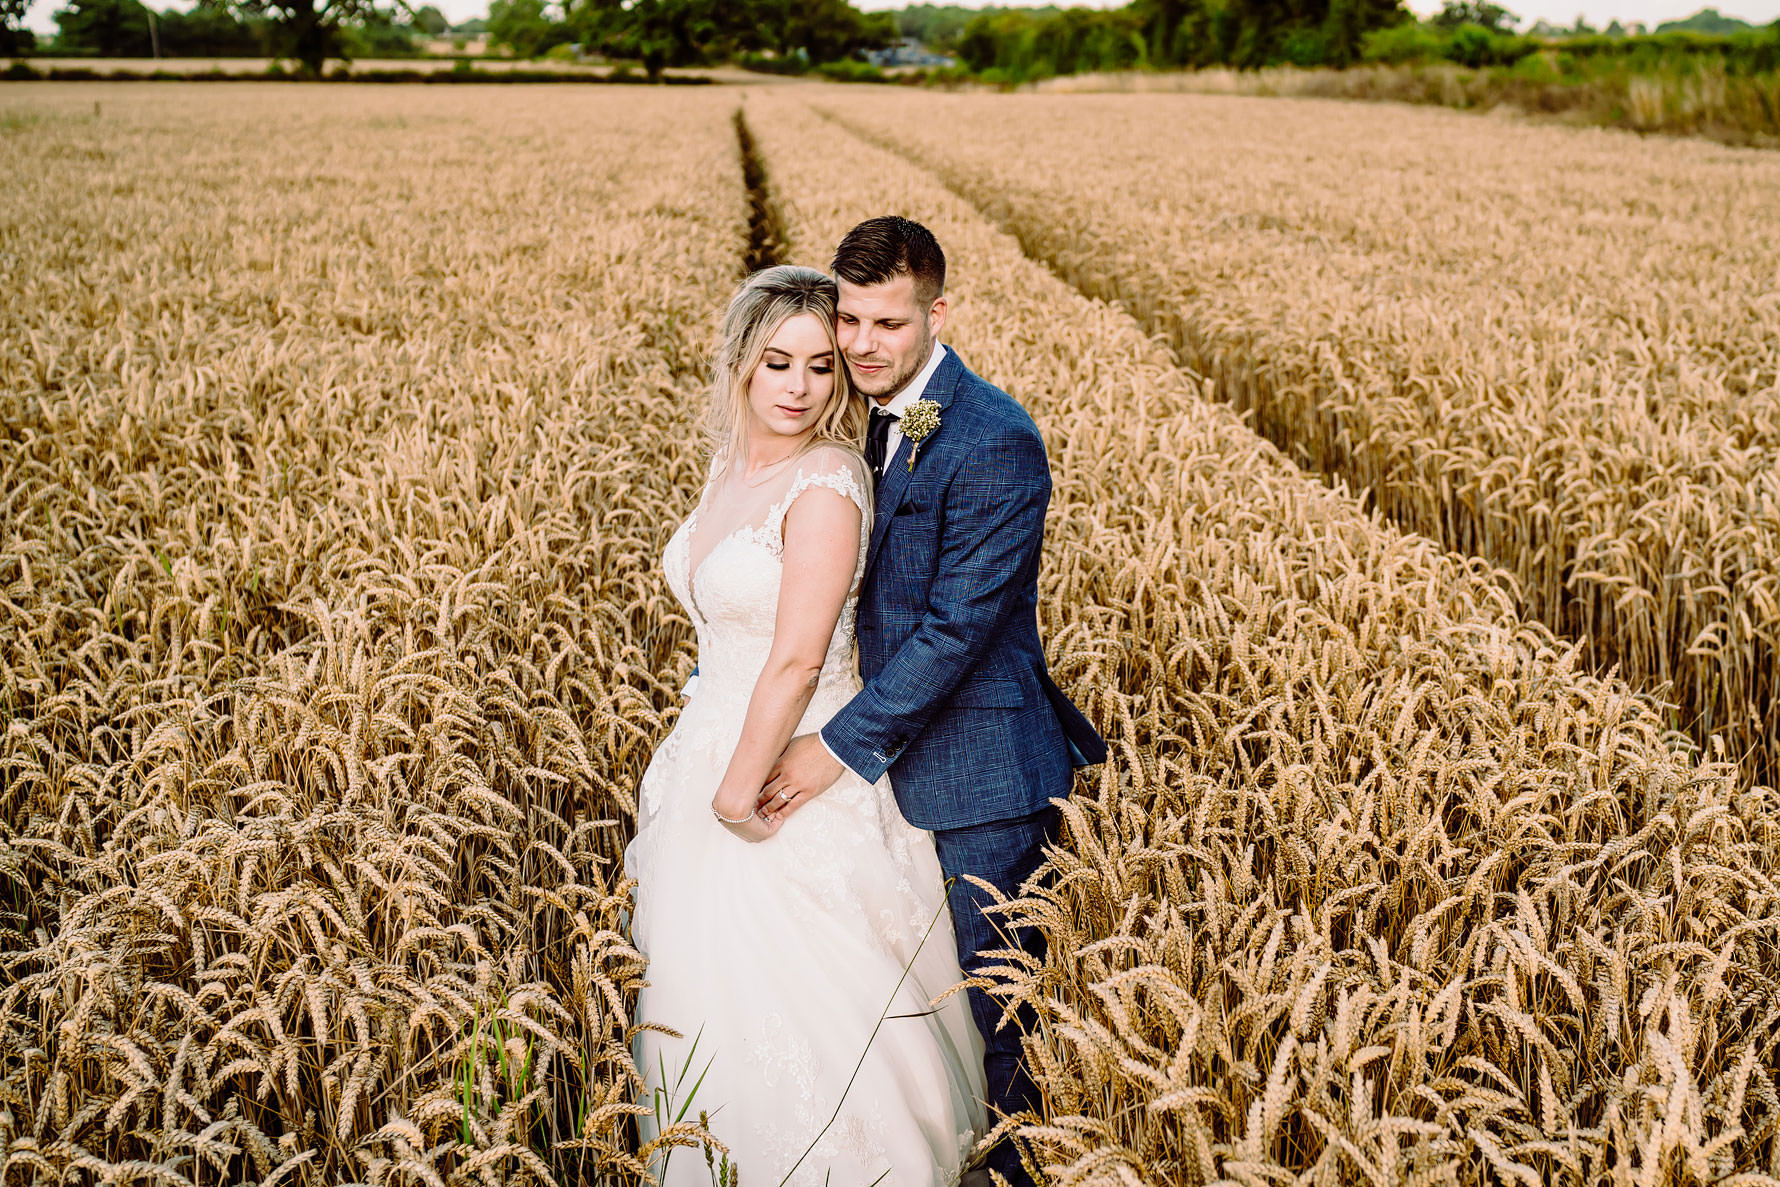 beautiful wedding photography at great tythe barn by elliot w patching